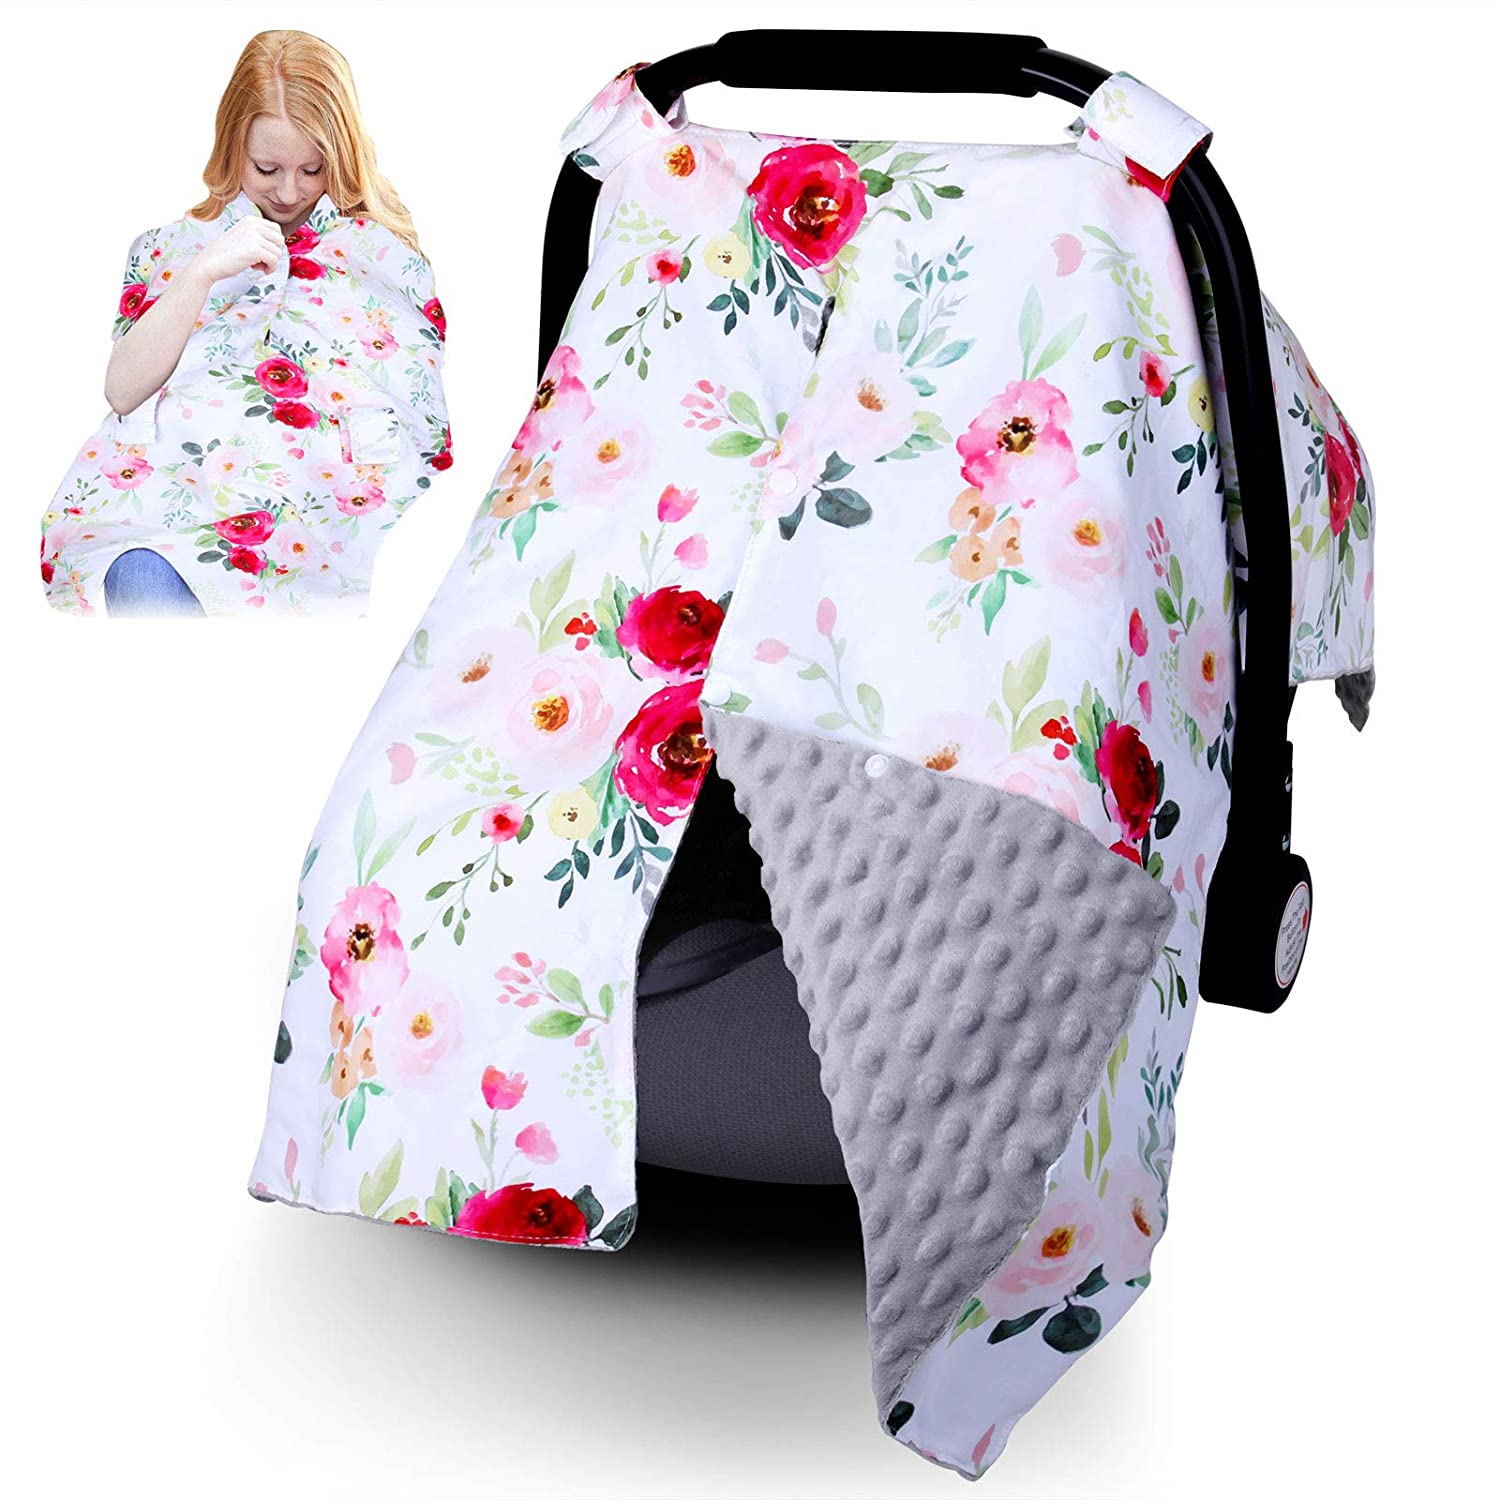 Infant Car OFFicial Seat Canopy for Baby Boys 1 100% quality warranty - or 2 in Girls